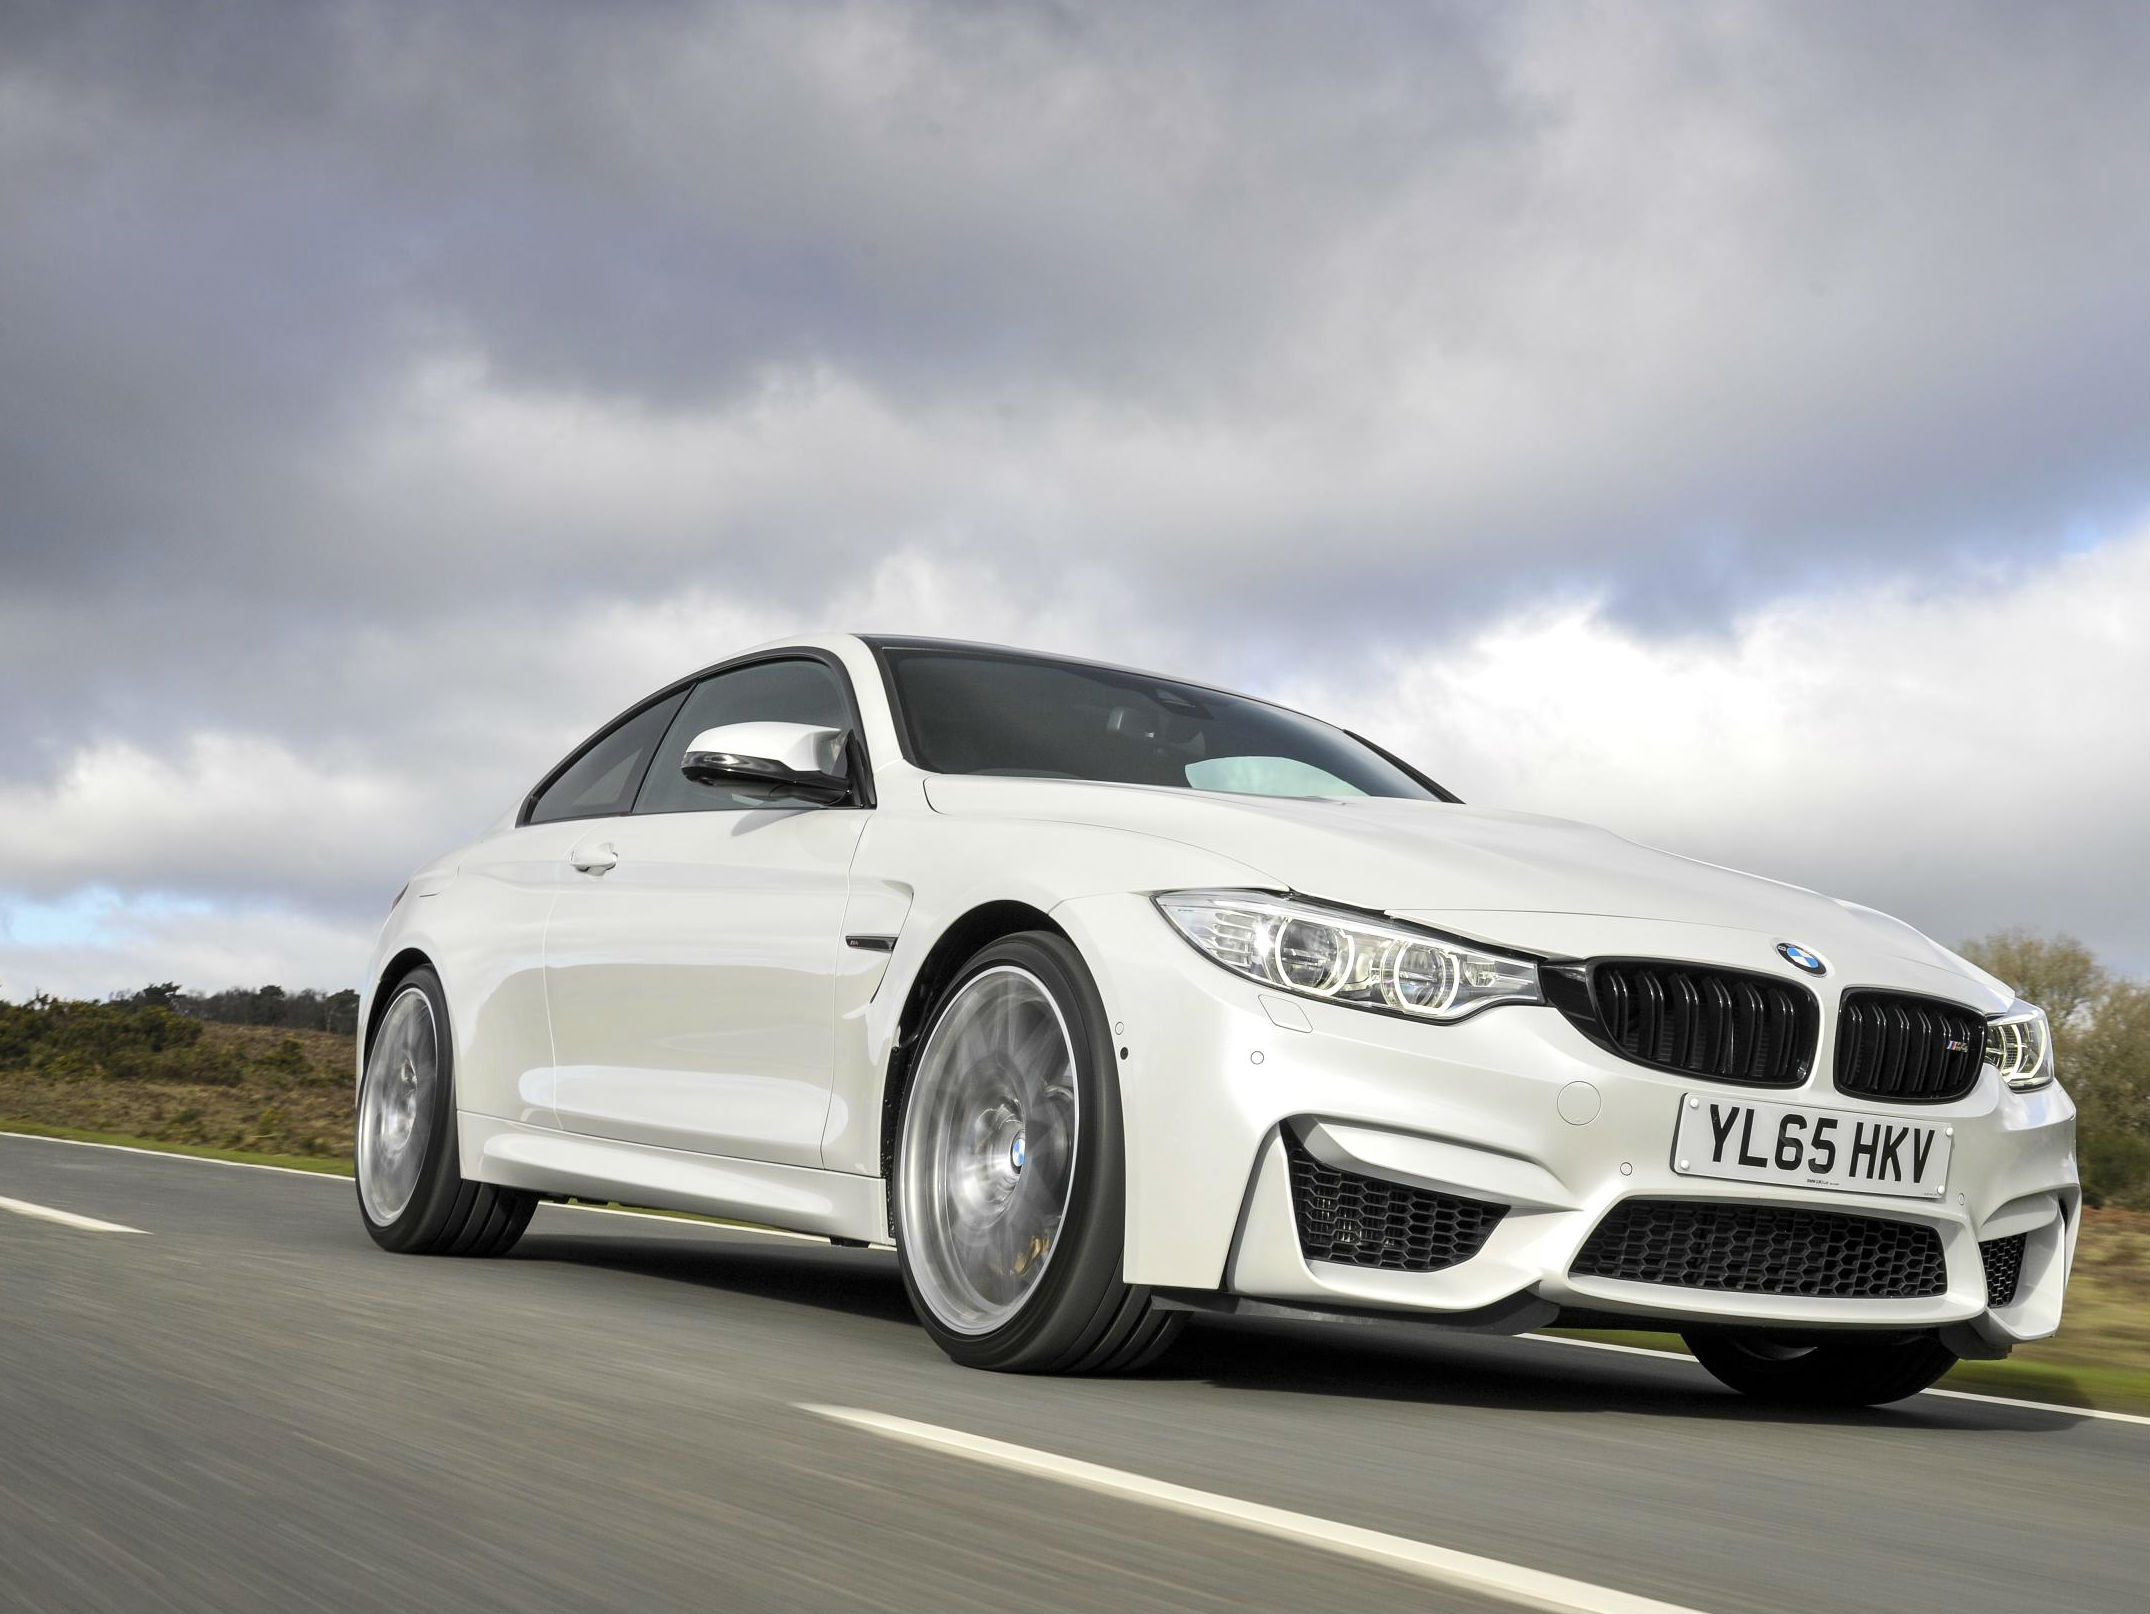 BMW M4 coupe qualifies for capital allowances if purchased by a company or the self-employed